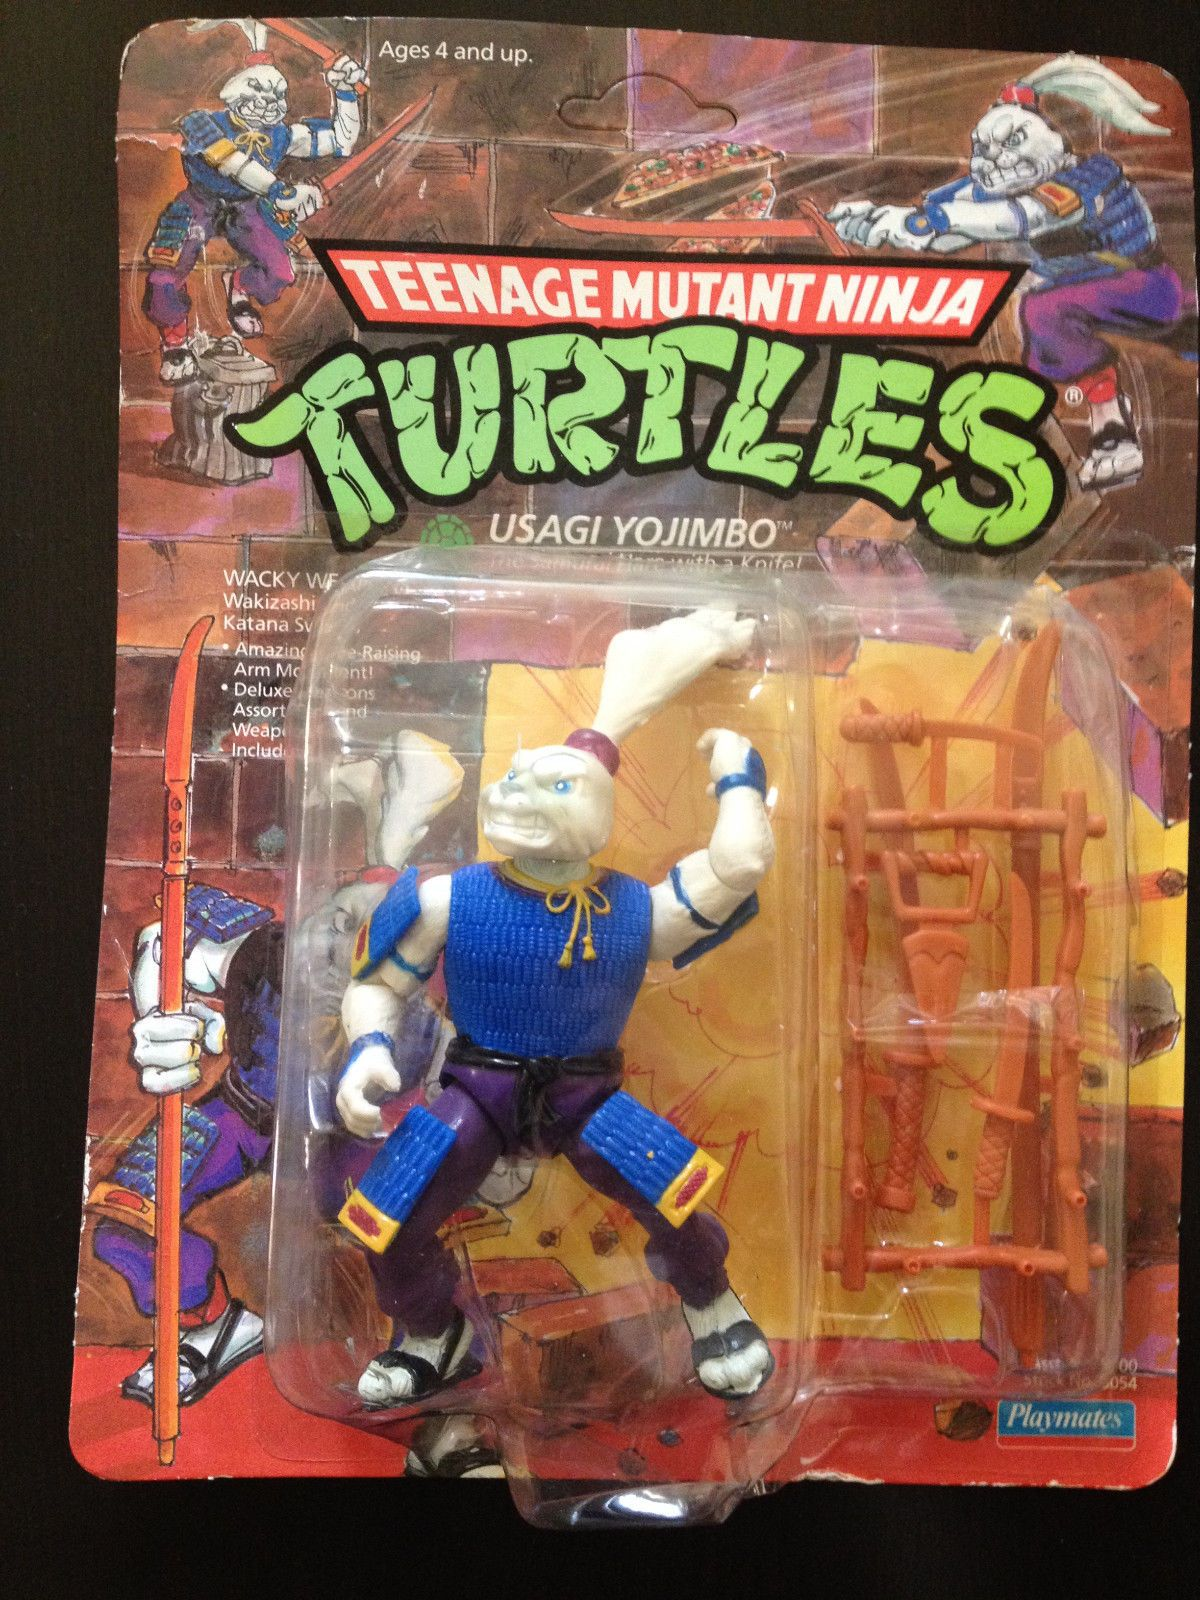 1989 Teenage Mutant Ninja Turtles Tmnt Lot Usagi Yojimbo